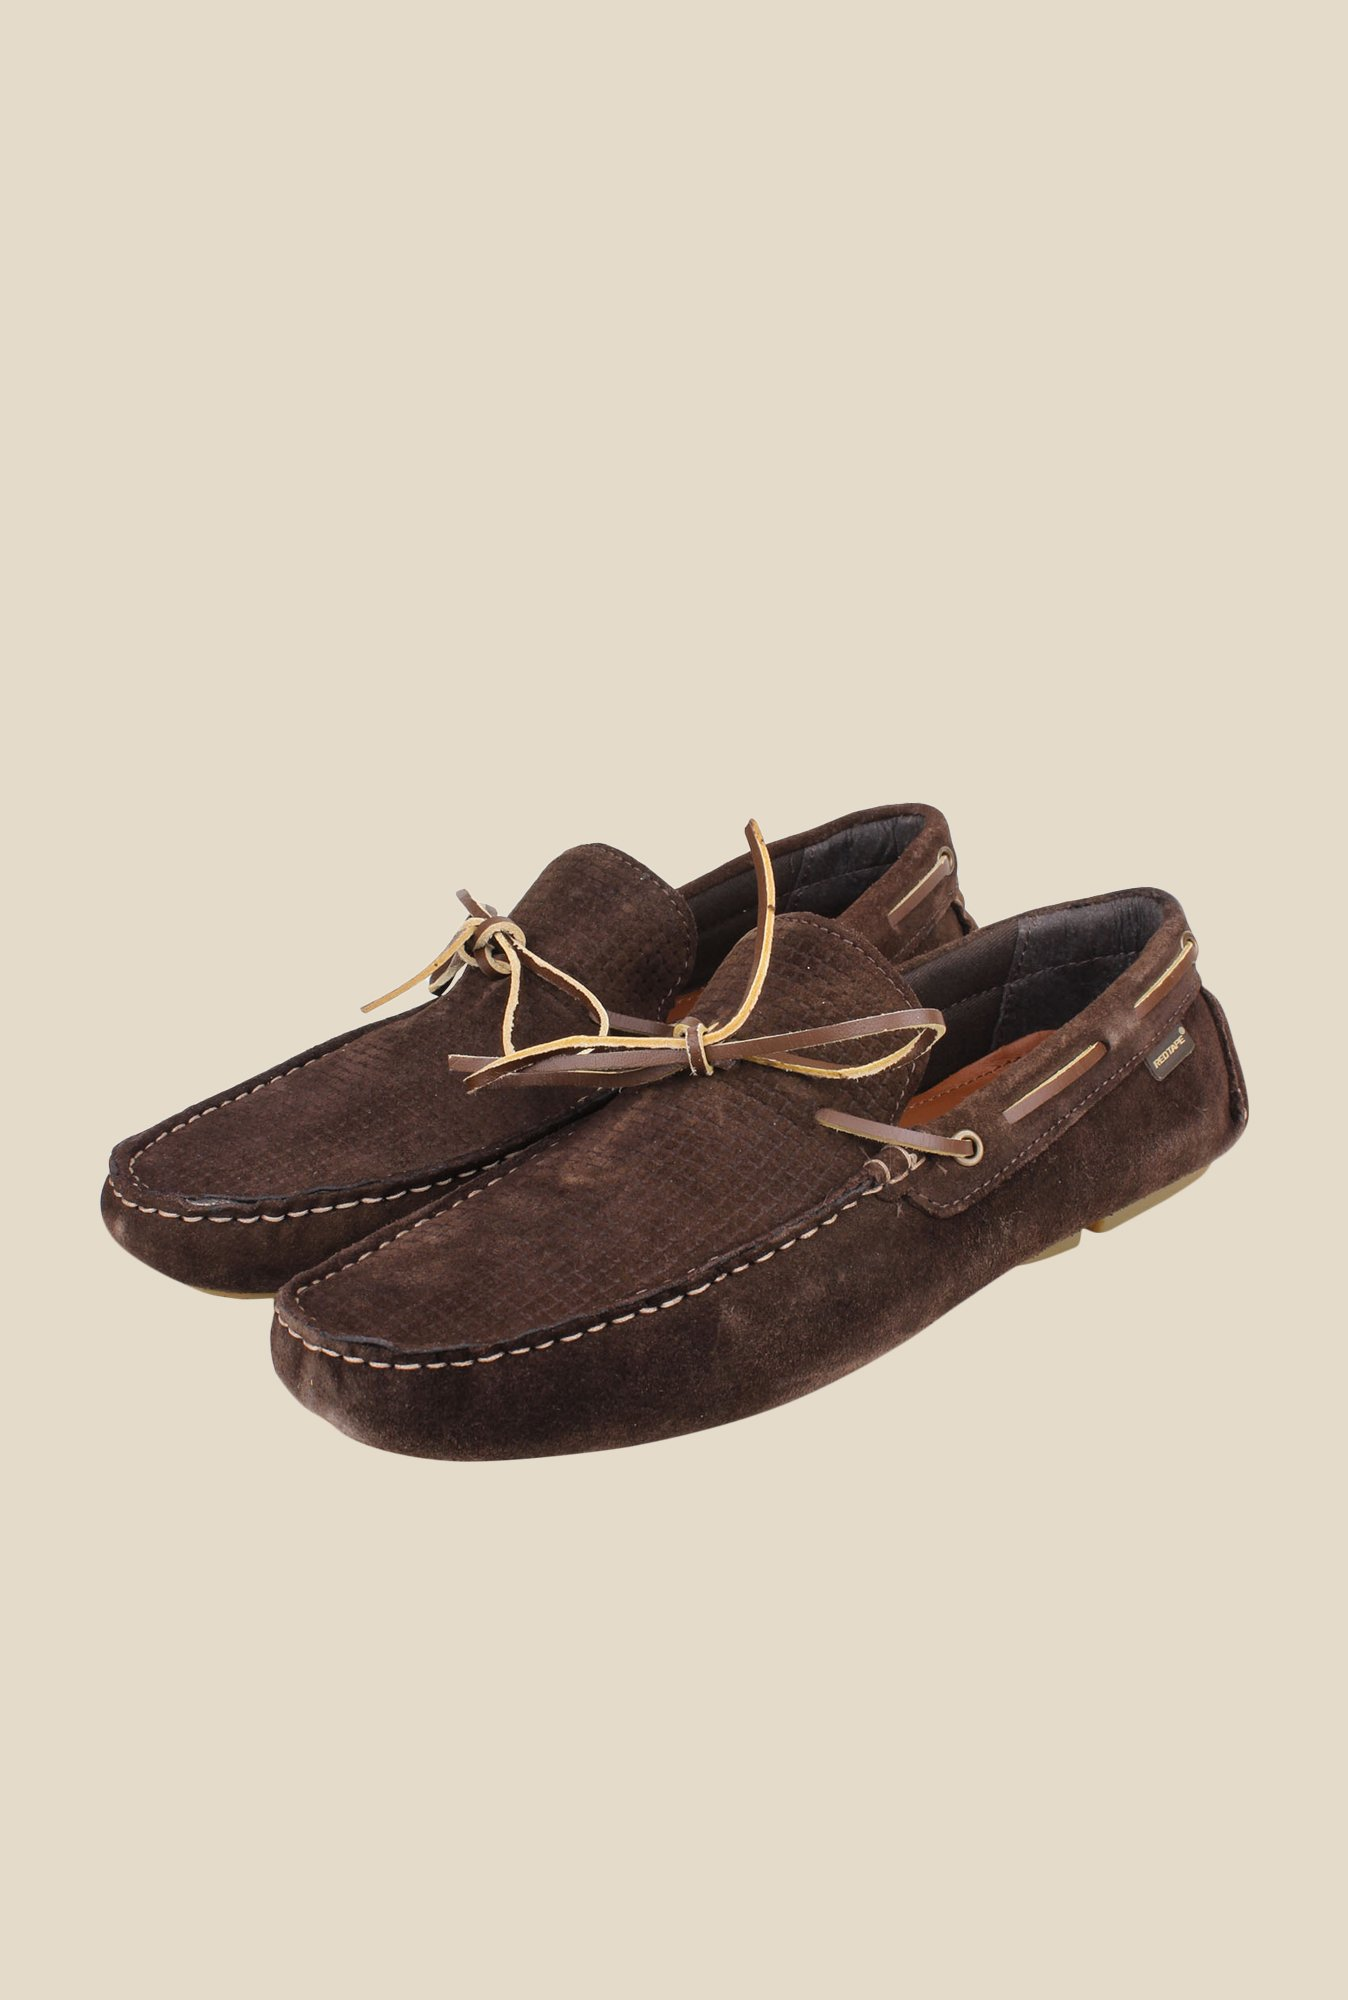 Red Tape Brown Boat Shoes